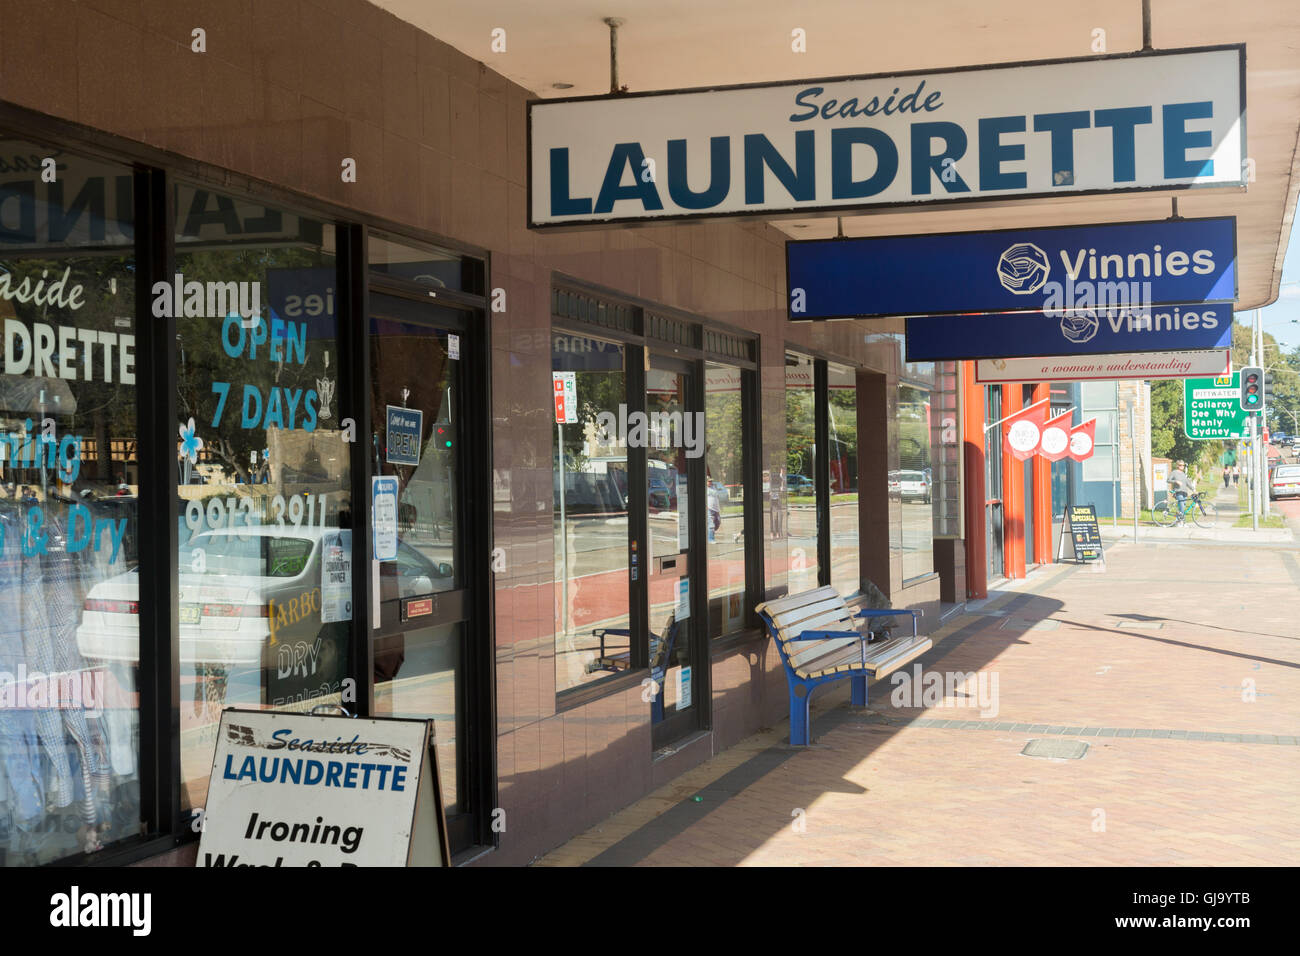 Laundrette and Vinnies charity shop in narrabeen, north Sydney,Australia - Stock Image